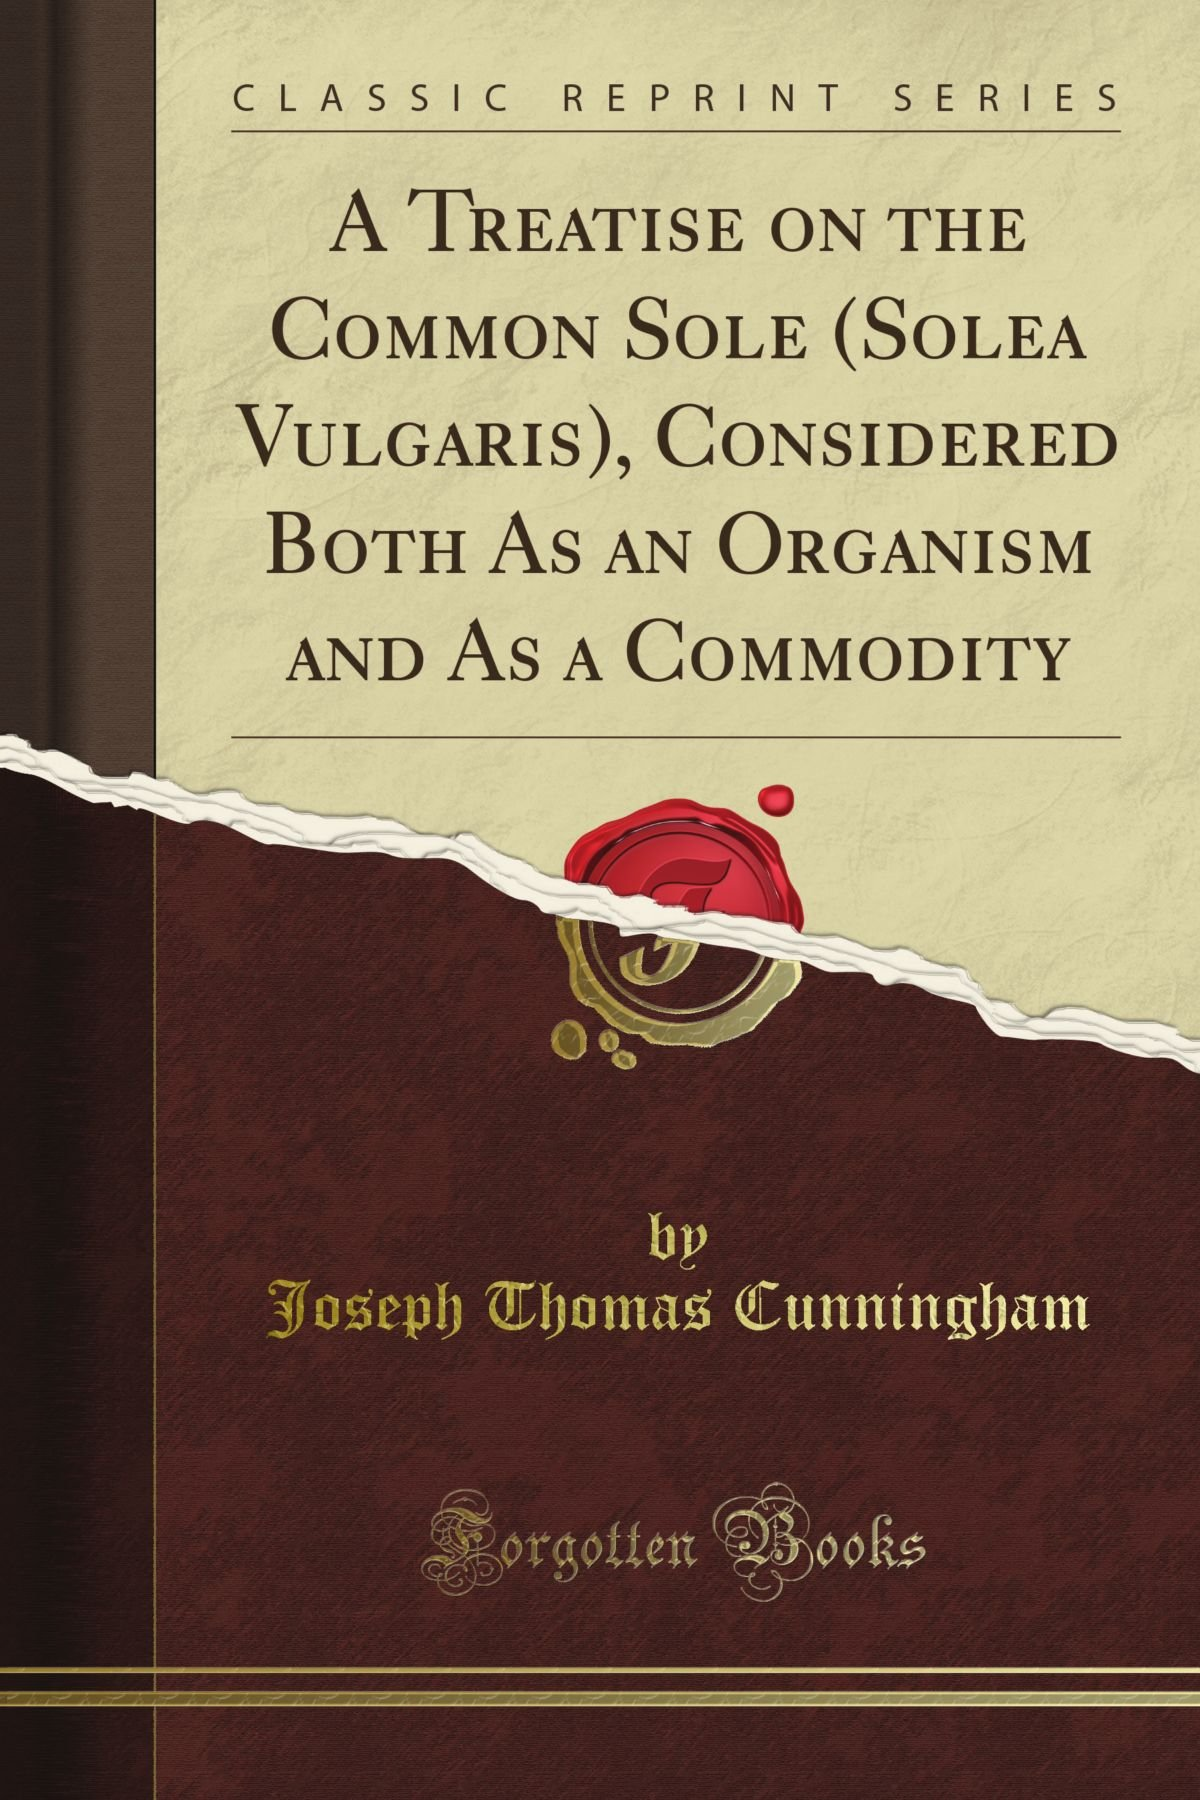 Download A Treatise on the Common Sole (Solea Vulgaris), Considered Both As an Organism and As a Commodity (Classic Reprint) PDF